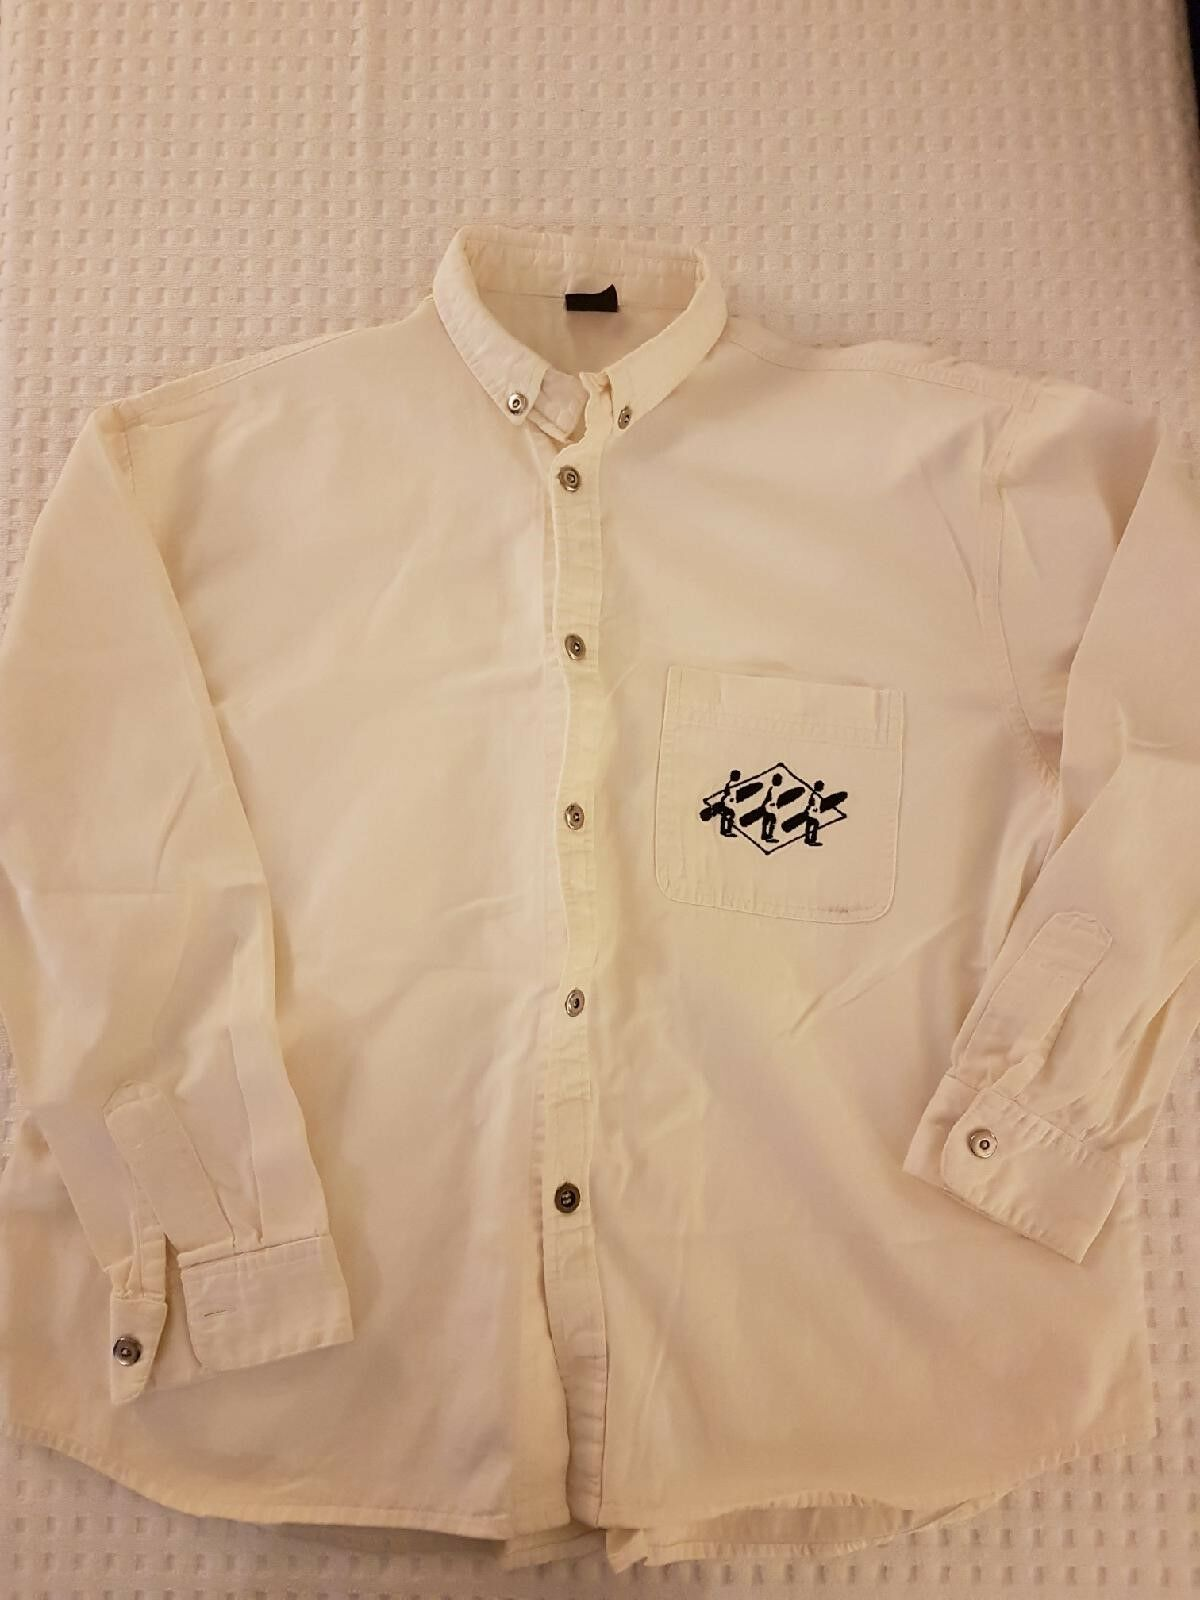 WEST BEACH Off-White   Cream  Oxford Shirt   LARGE   Cotton   RARE  fast shipping and best service